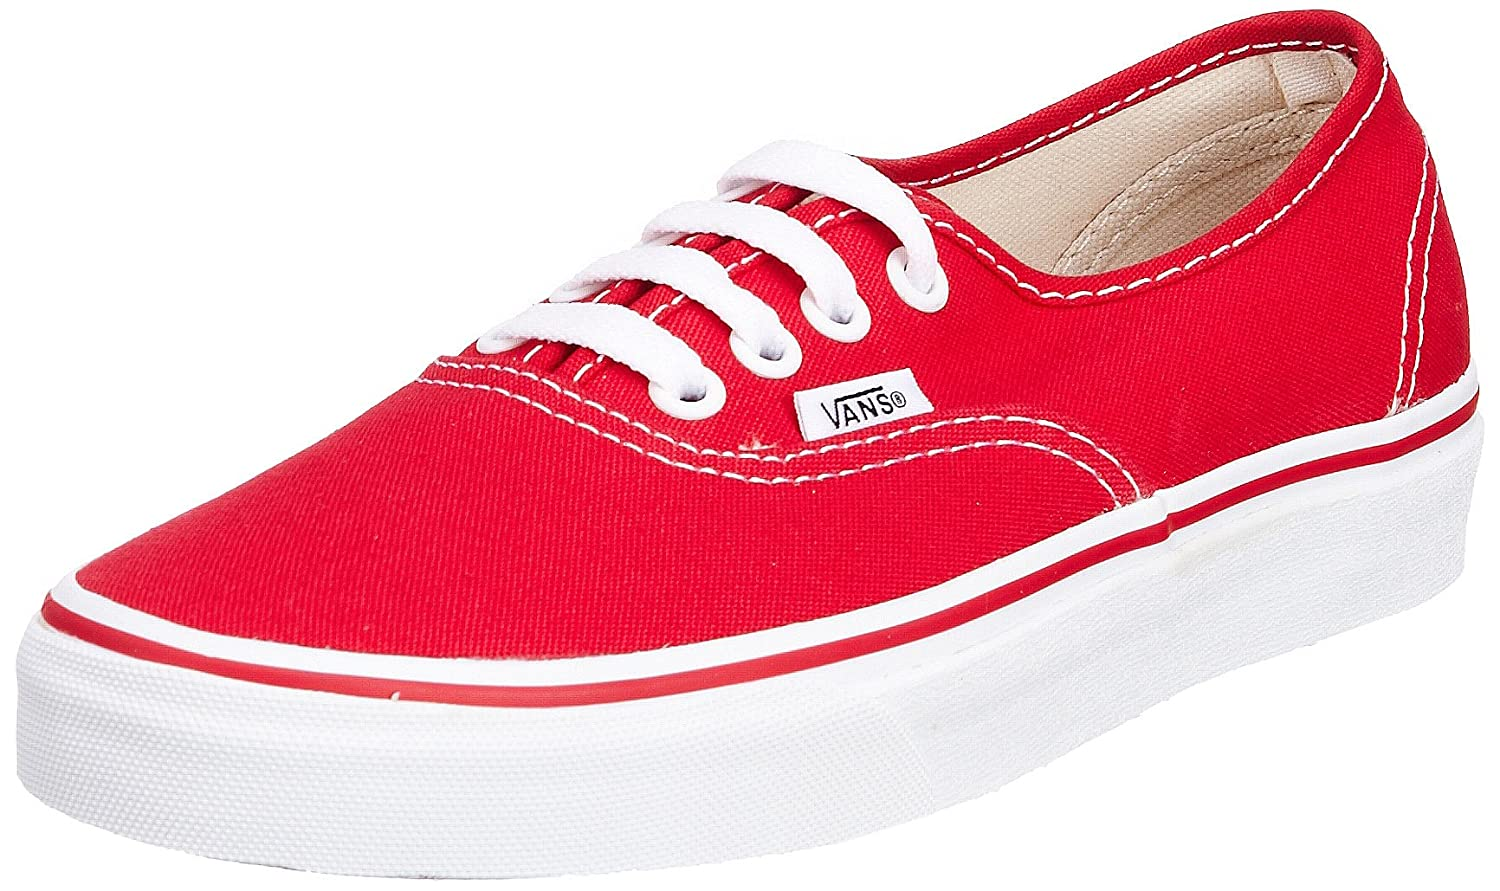 Vans Authentic, Zapatillas de Tela Unisex 36 EU|Rojo (Red)